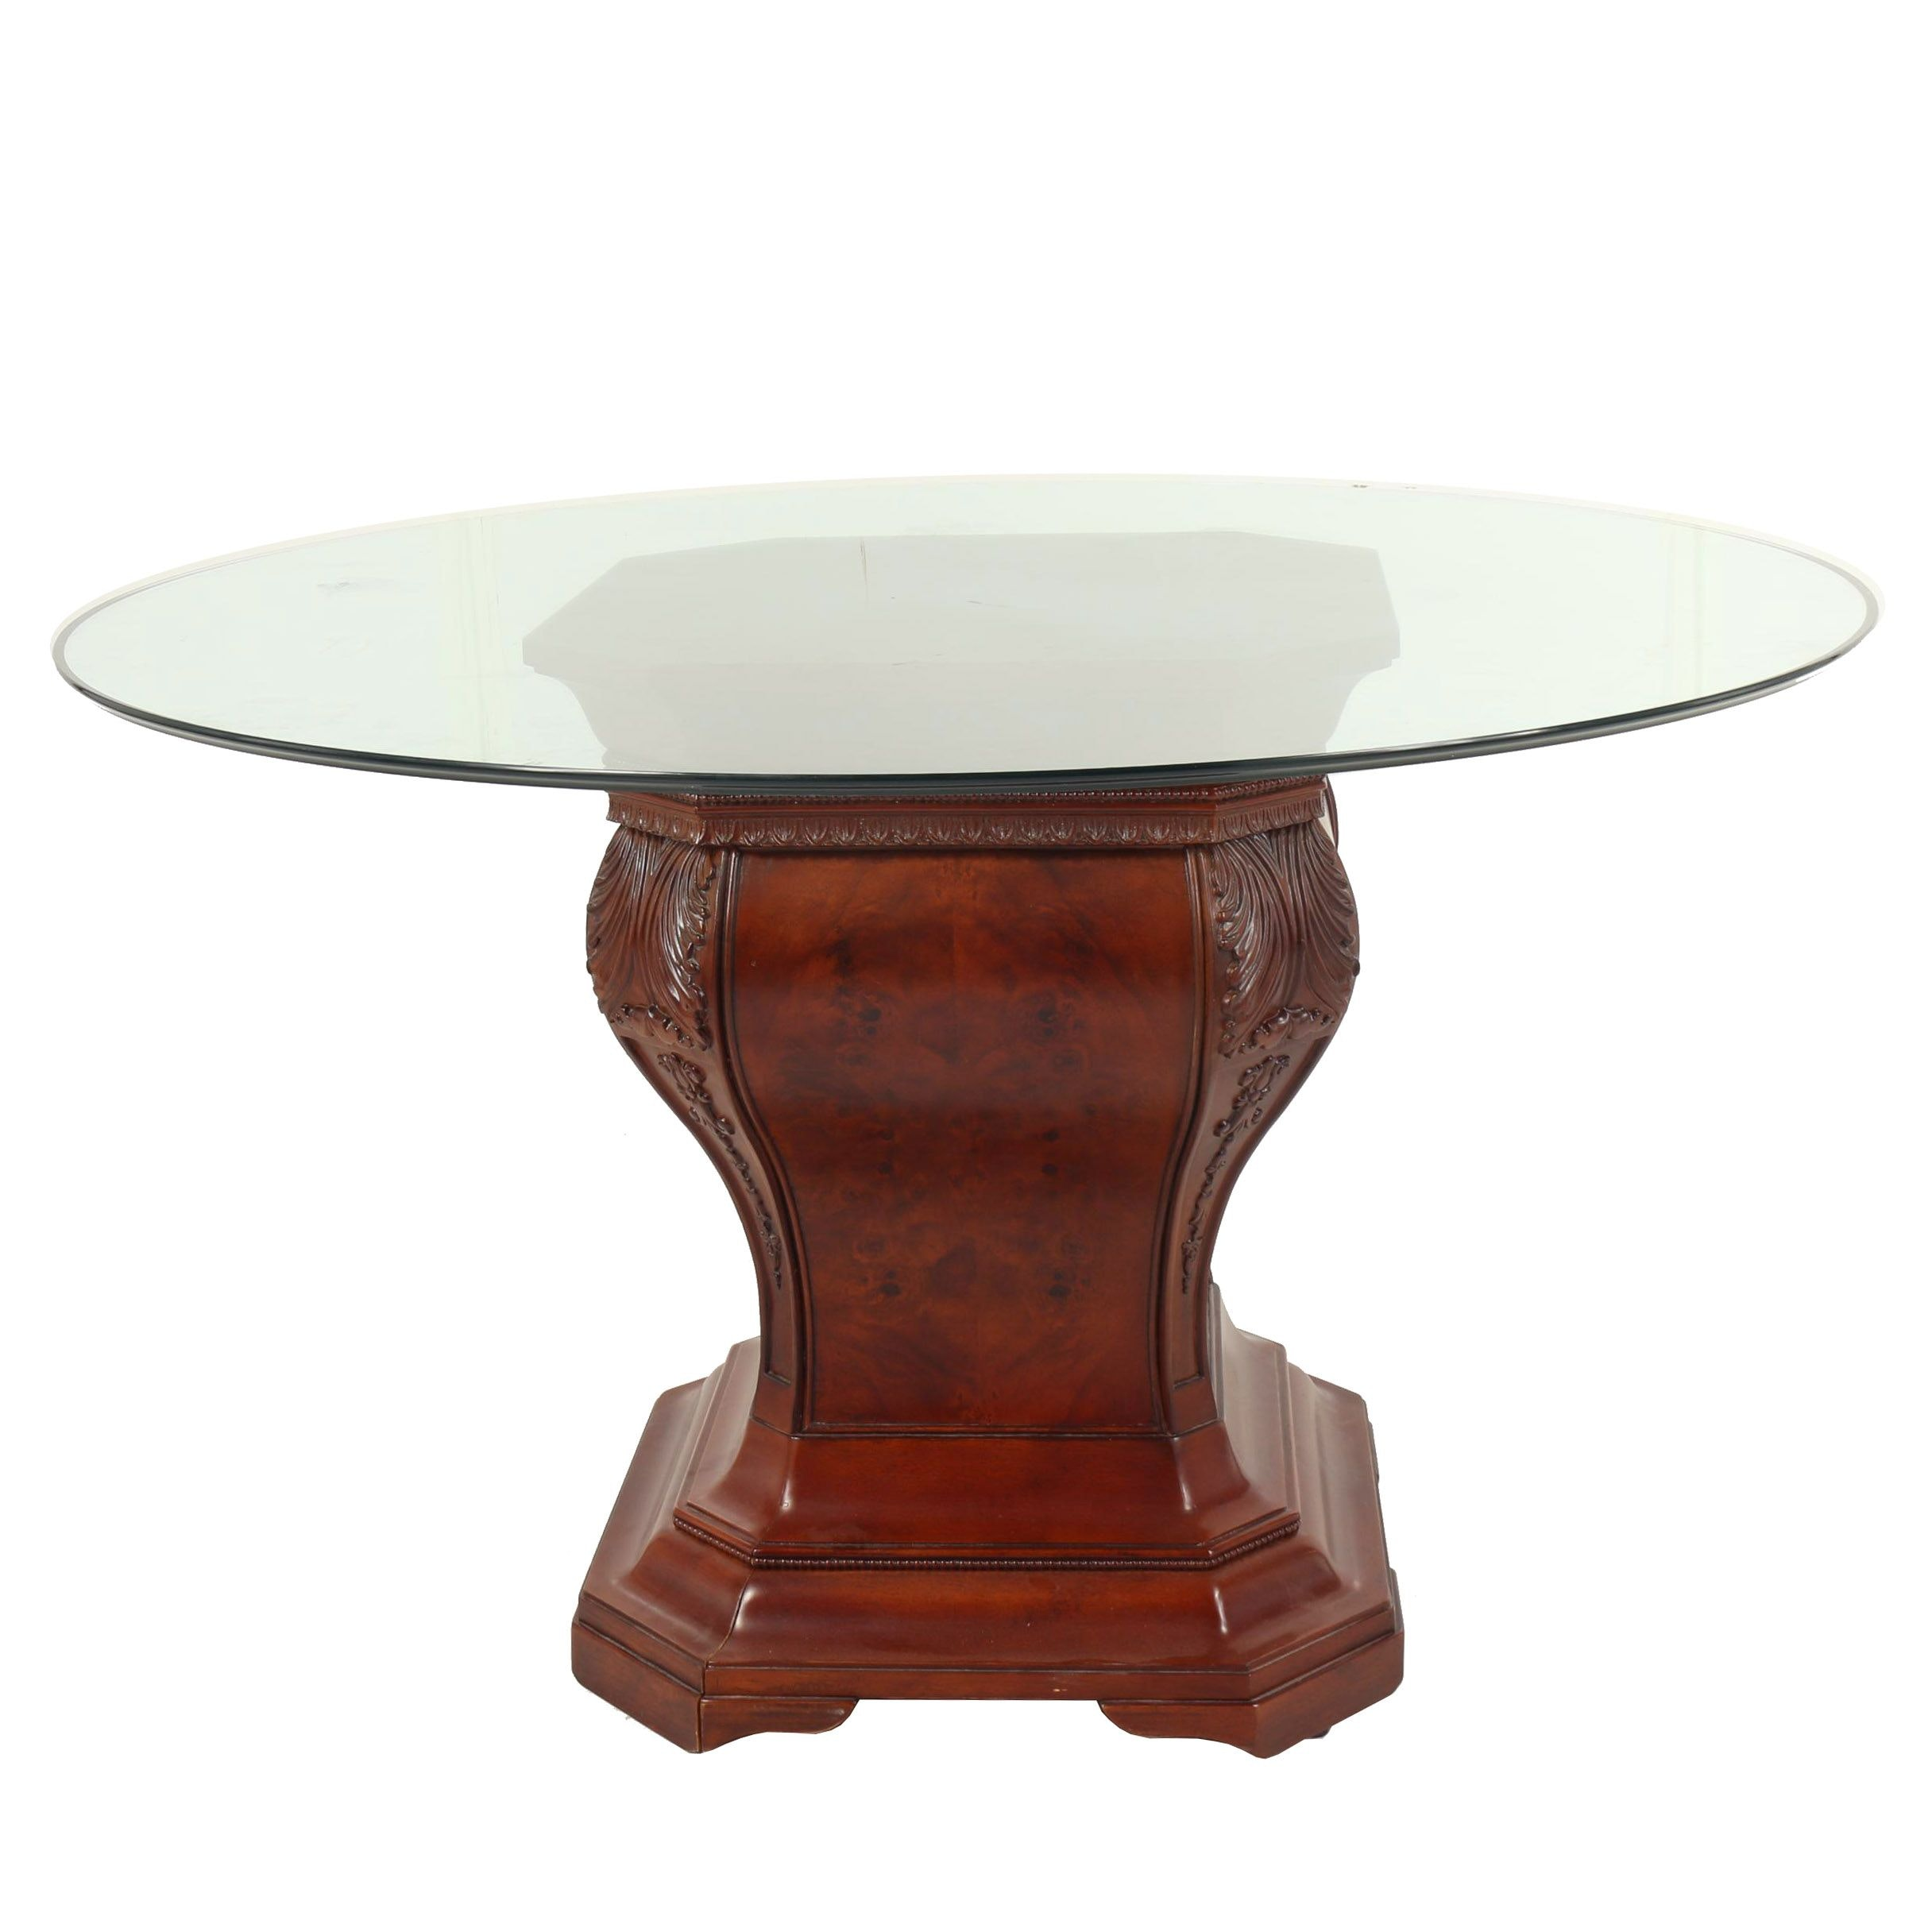 Regency Style Burl Wood Pedestal Table With Glass Top 21st Century